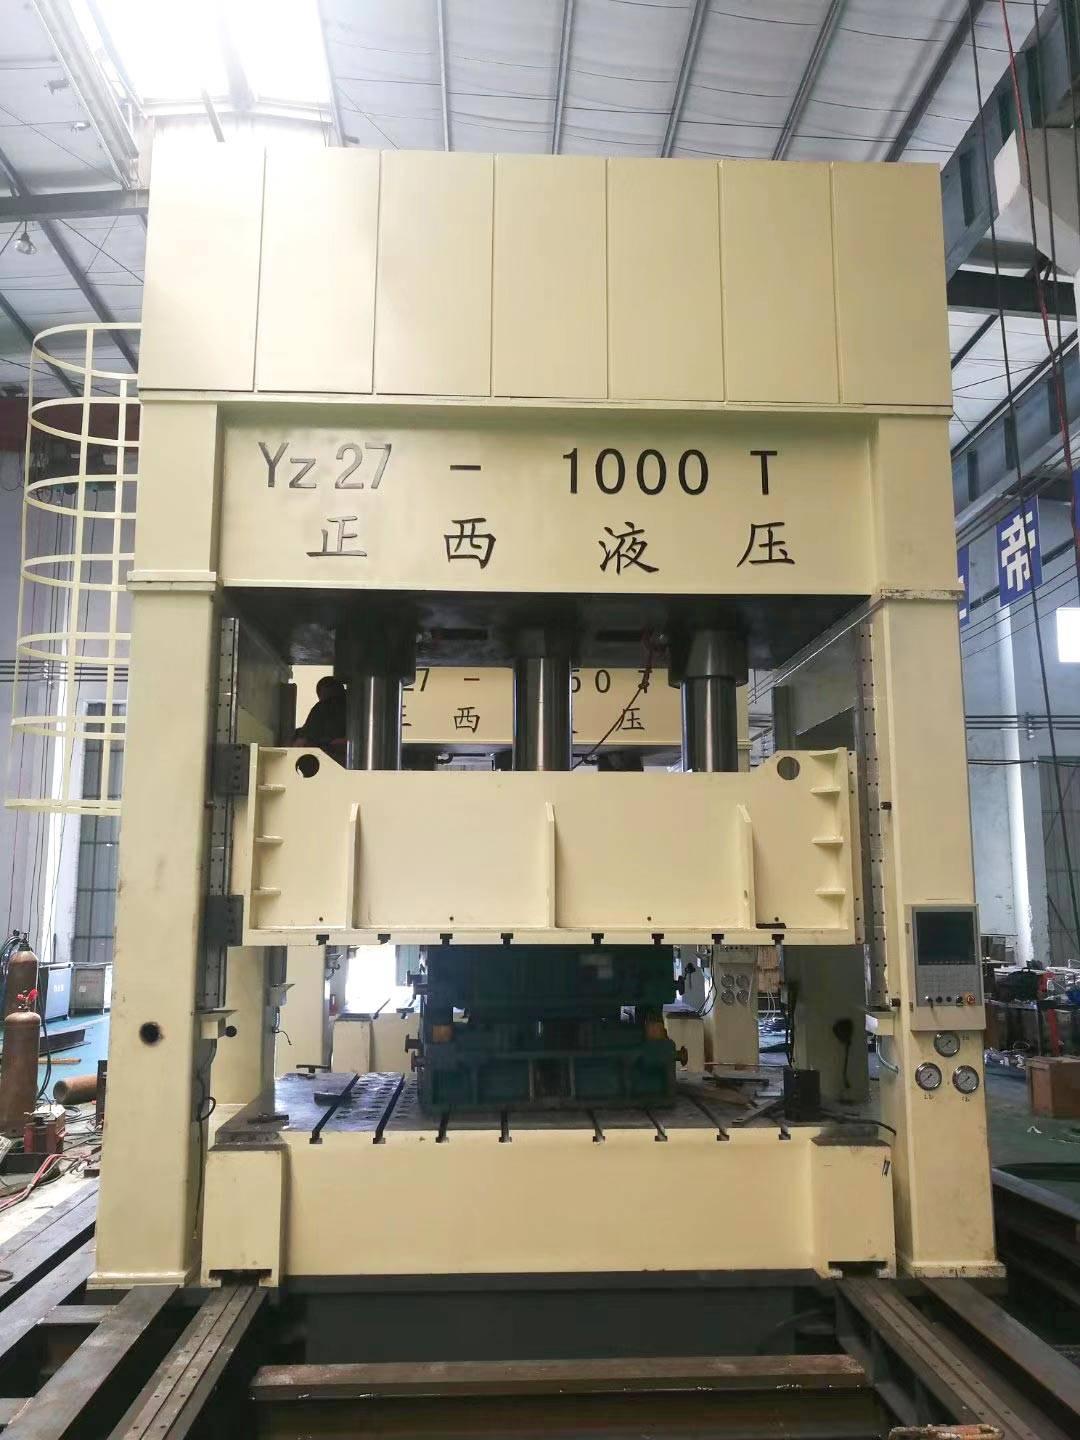 1000T on deep drawing machine